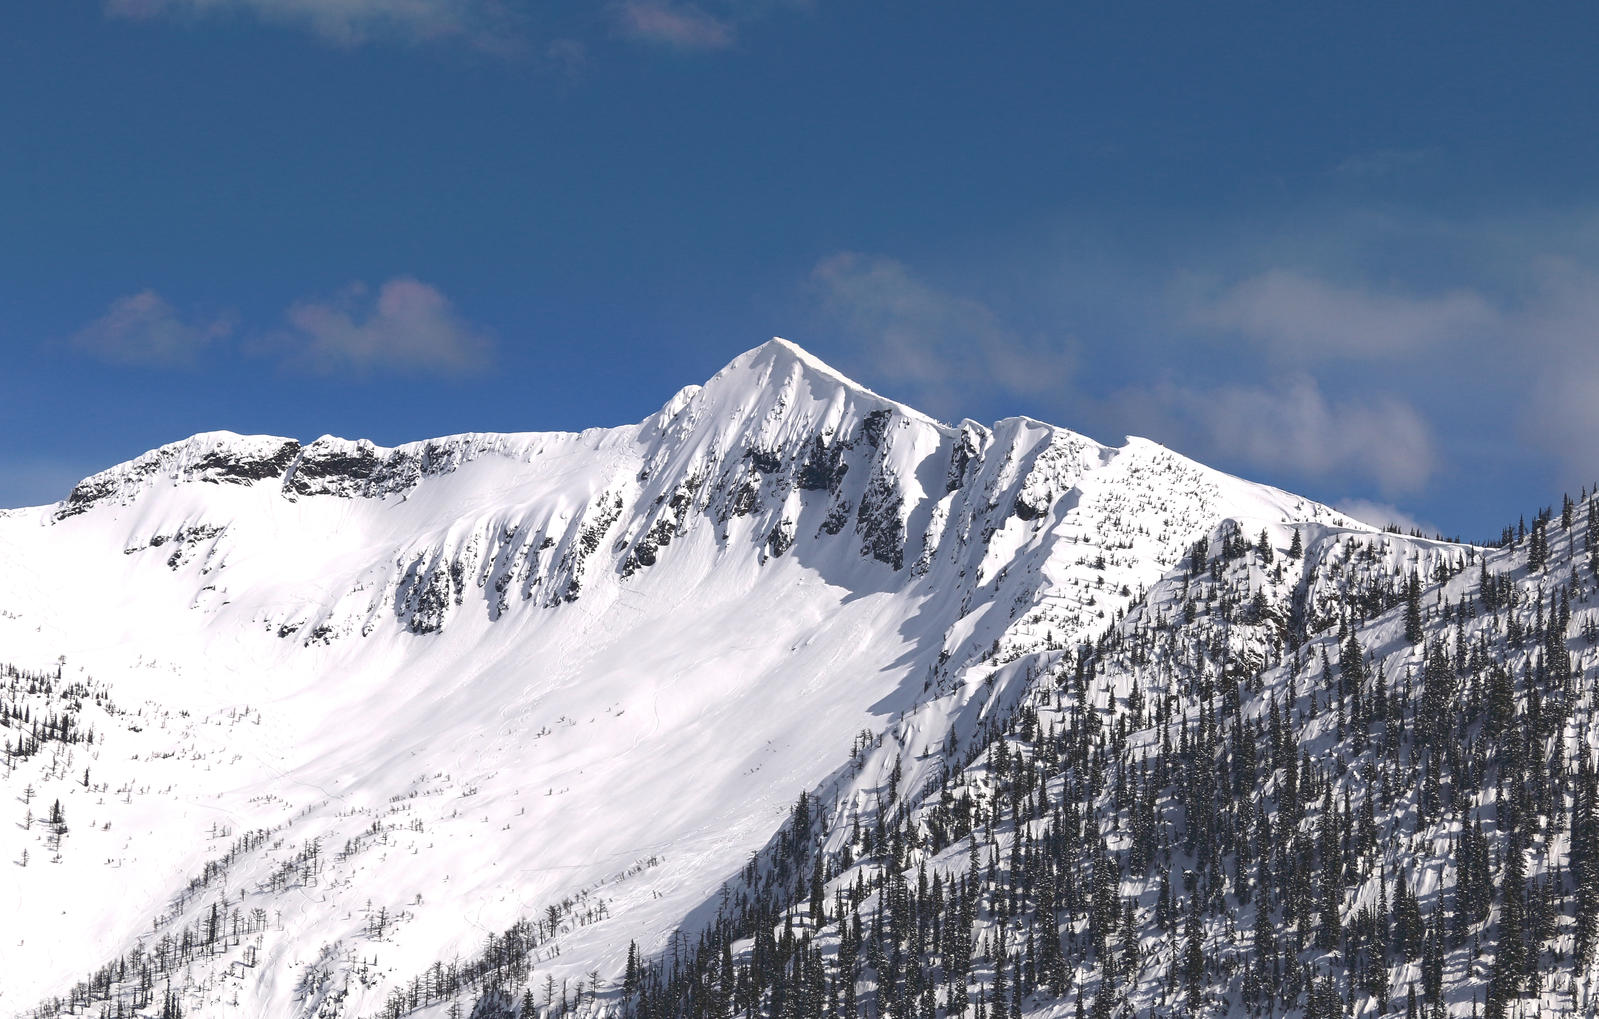 Ymir Peak at Whitewater Ski Area